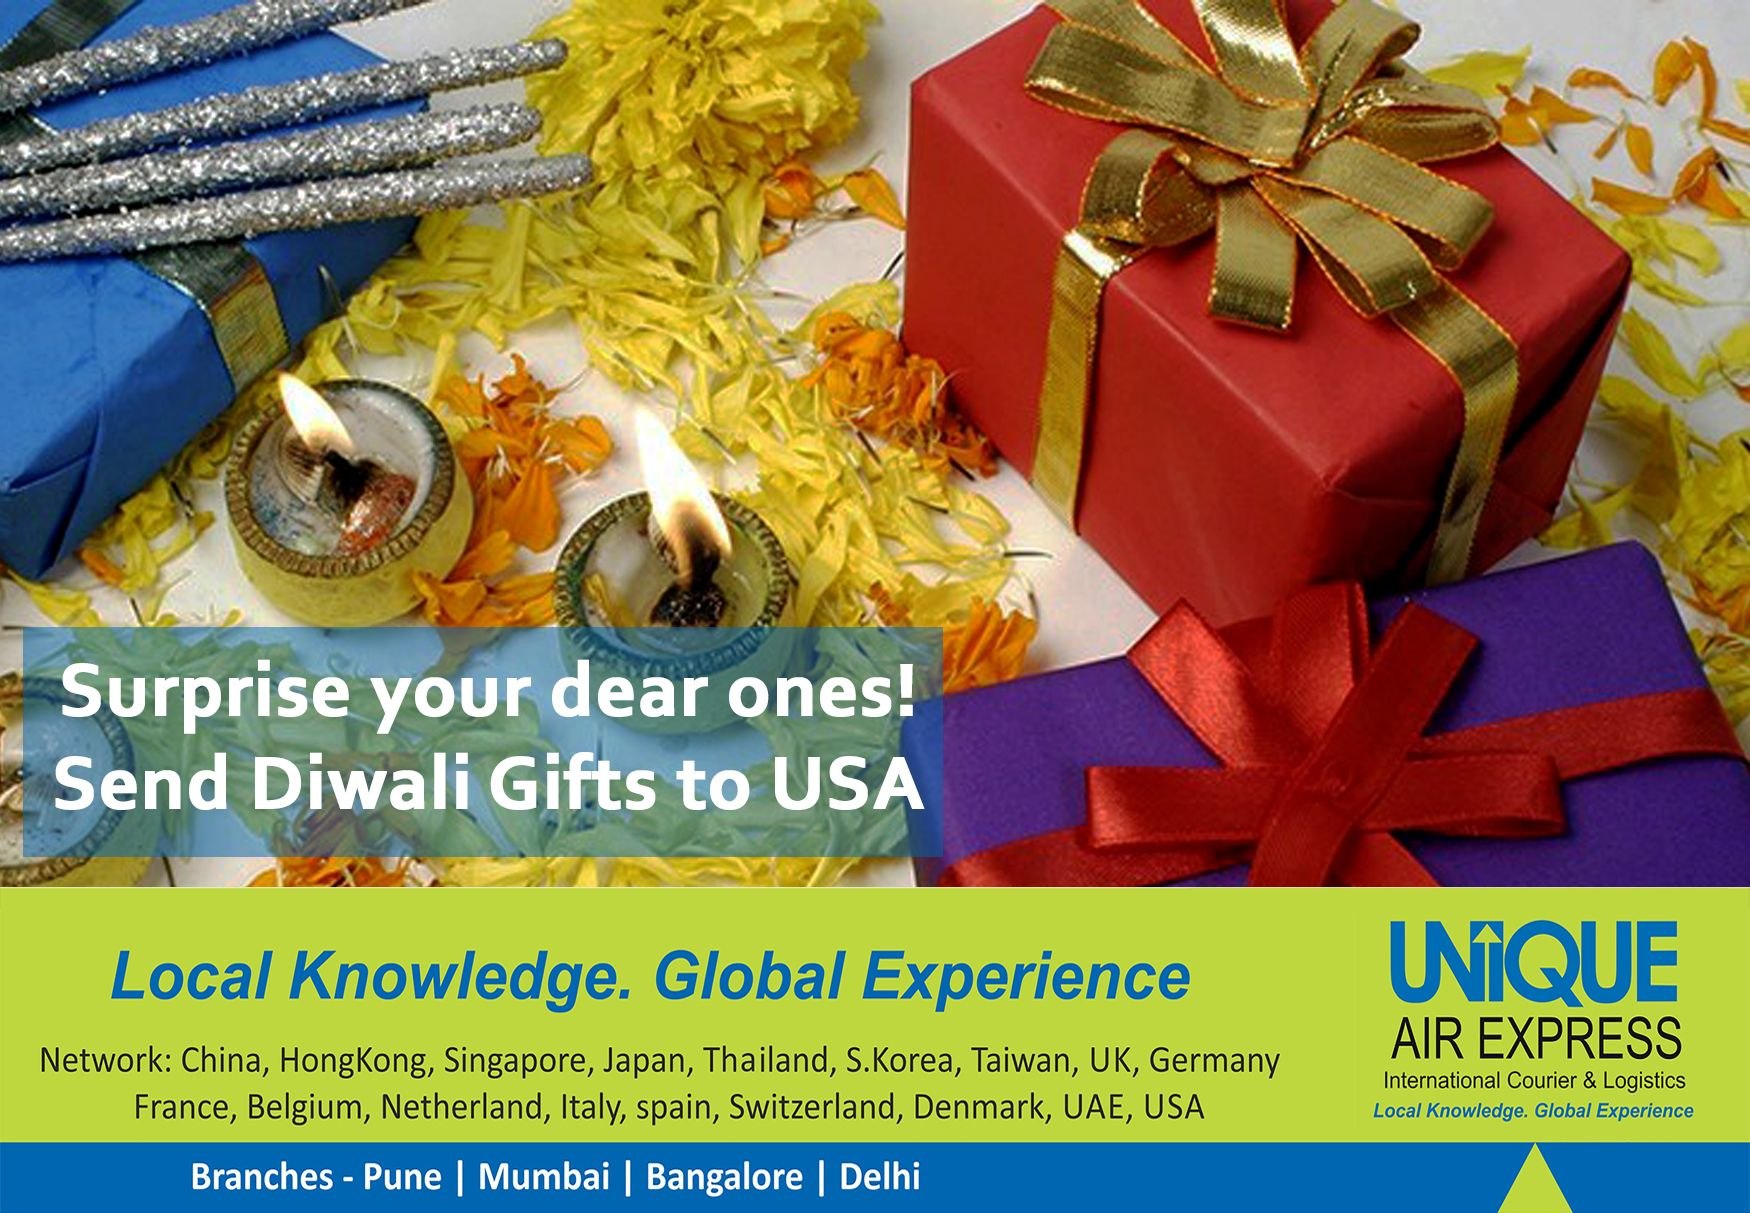 A Opportunity to Surprise Your Dear Ones Staying_Abroad